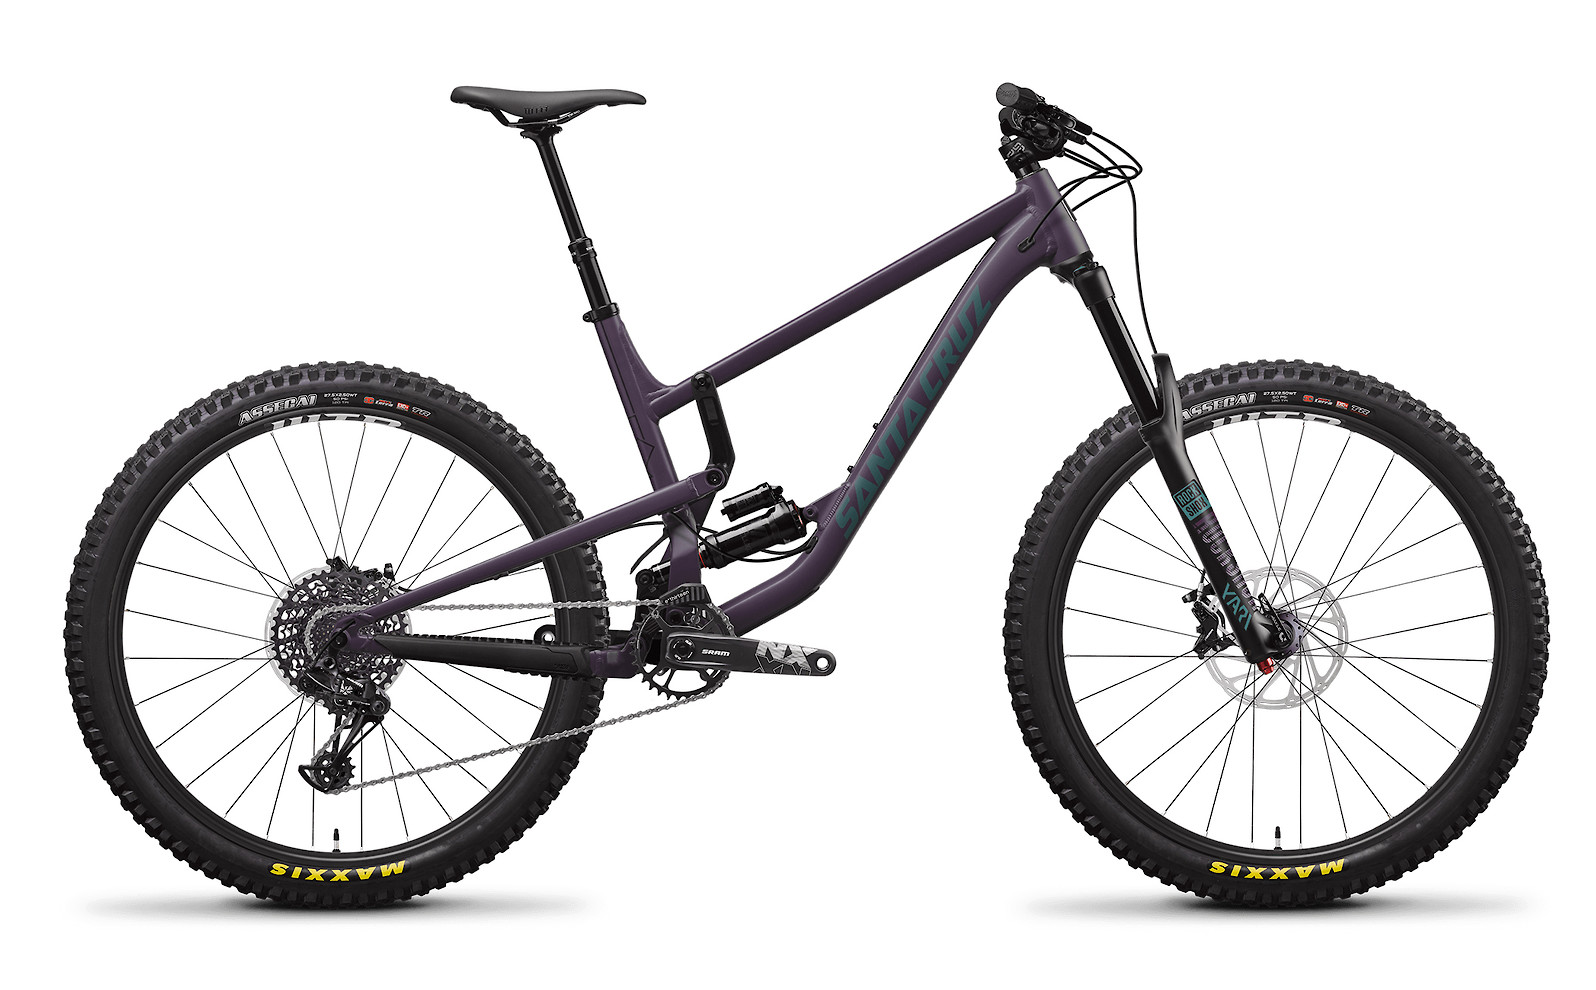 2020 Santa Cruz Nomad Aluminum R (Eggplant and Aquarius Green)